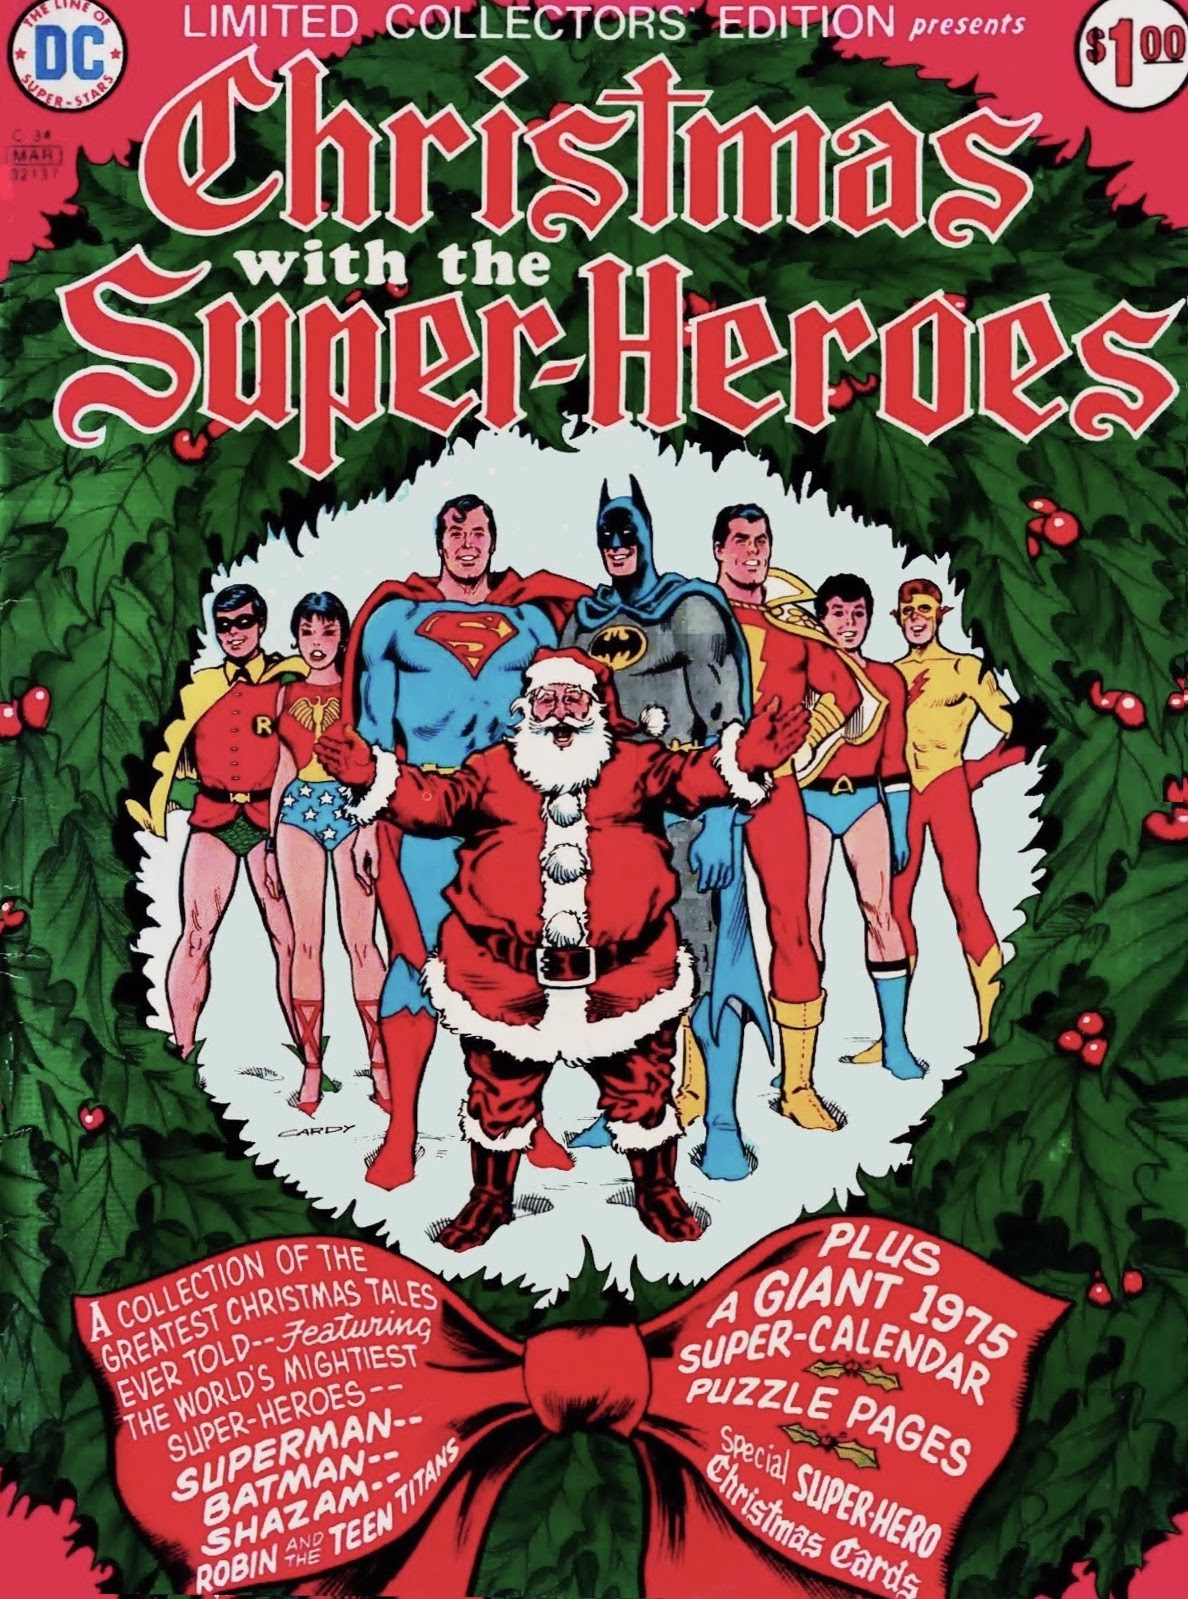 Santa Claus with Superman, Batman, Shazam / Captain Marvel, and Teen Titans, above text promoting stories and other contents including a Giant 1975 Super-Calendar